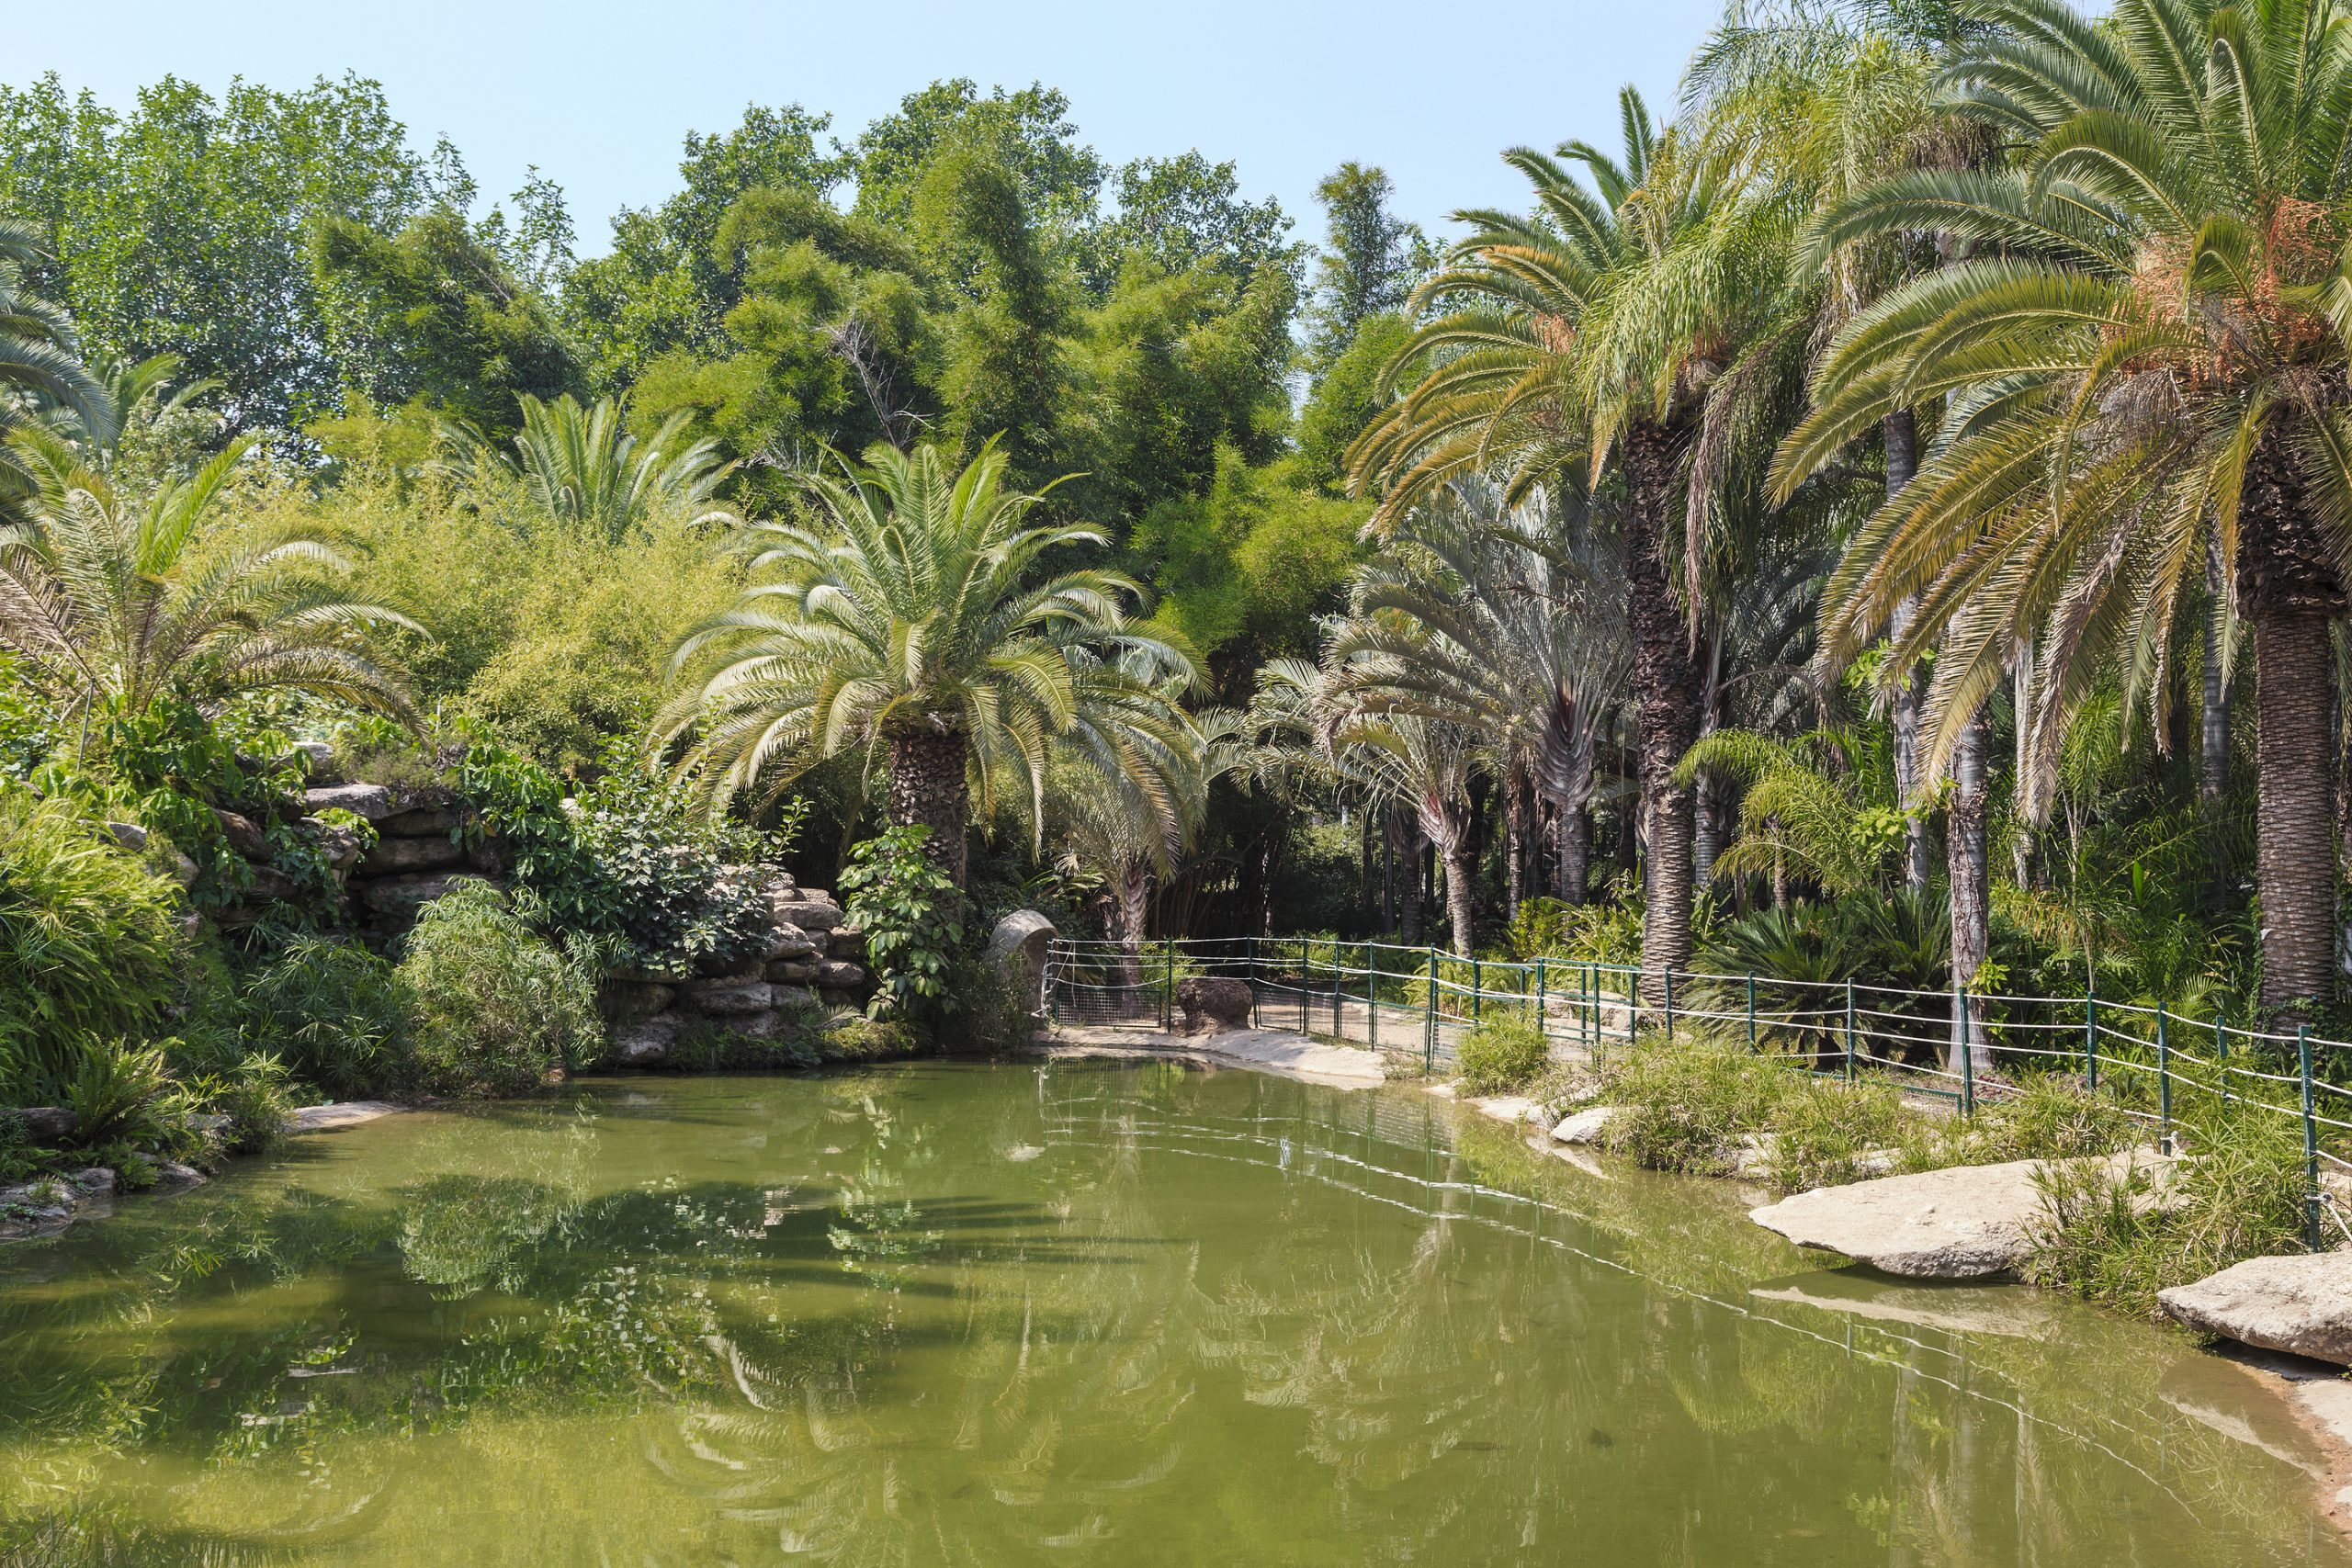 The Tropical Garden of the Yarkon Park - tel aviv top 10